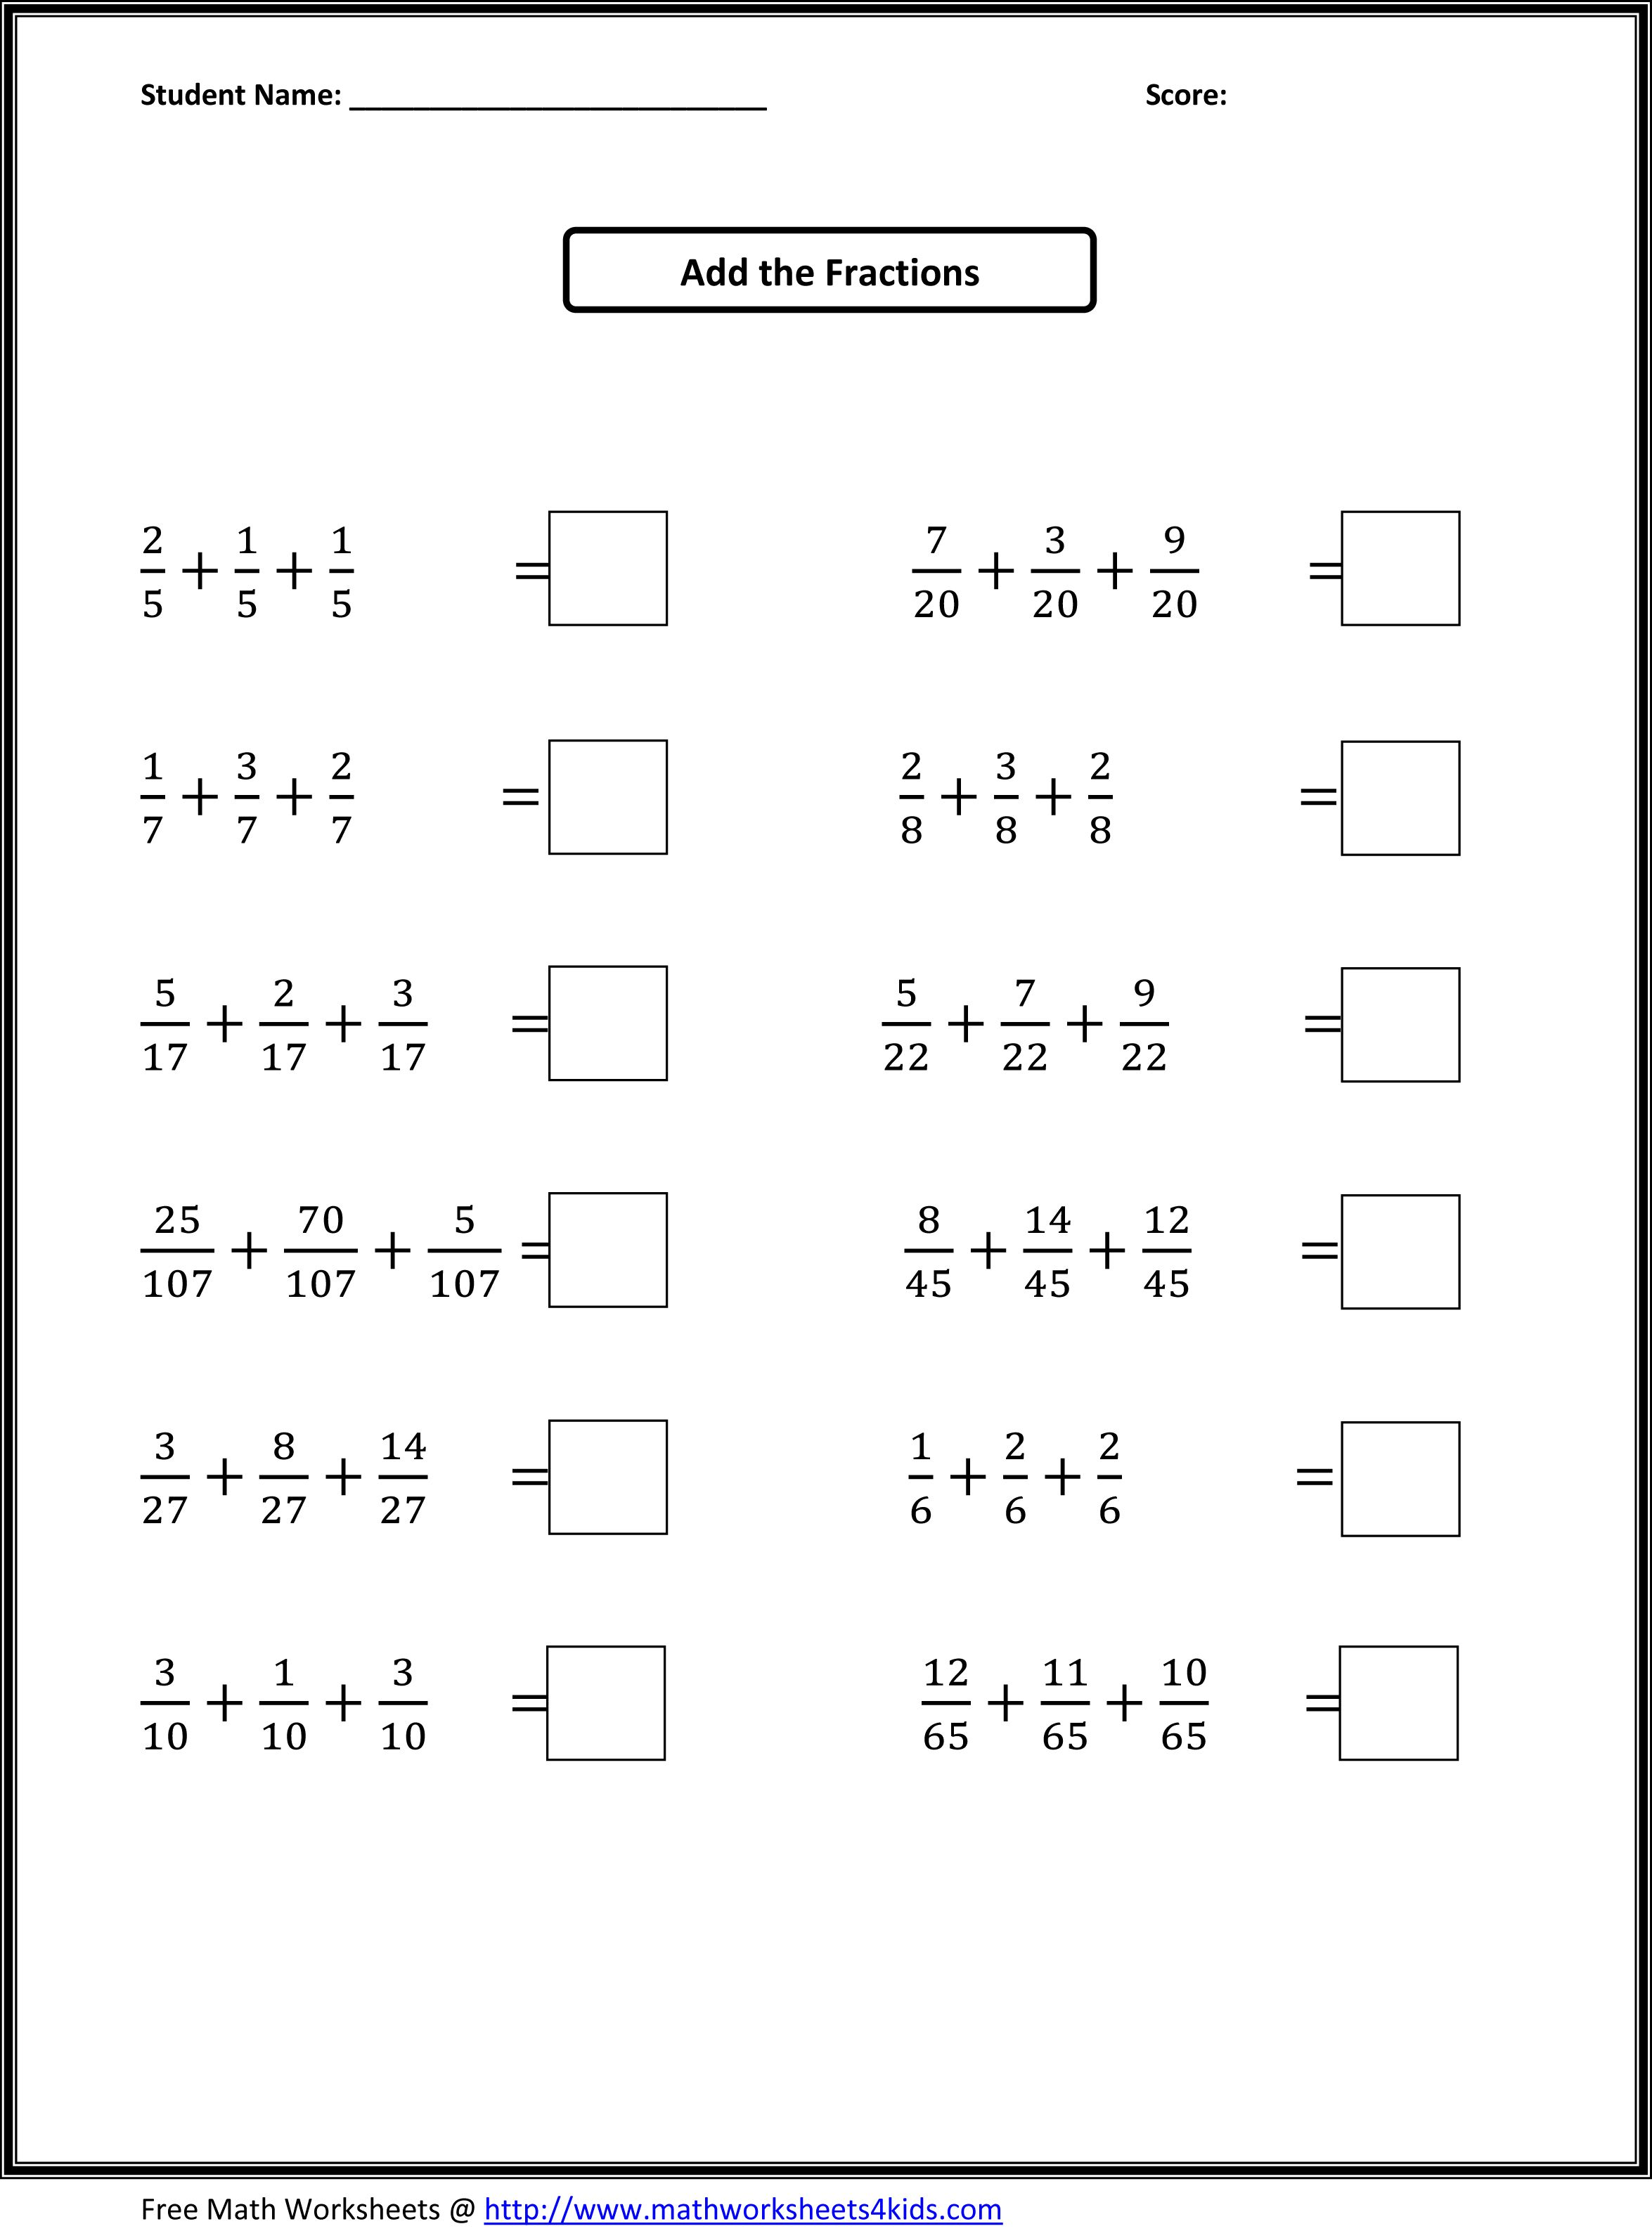 Worksheets Math Worksheets 5th Grade Fractions printable worksheets by grade level and skill teaching ideas fourth math worksheets